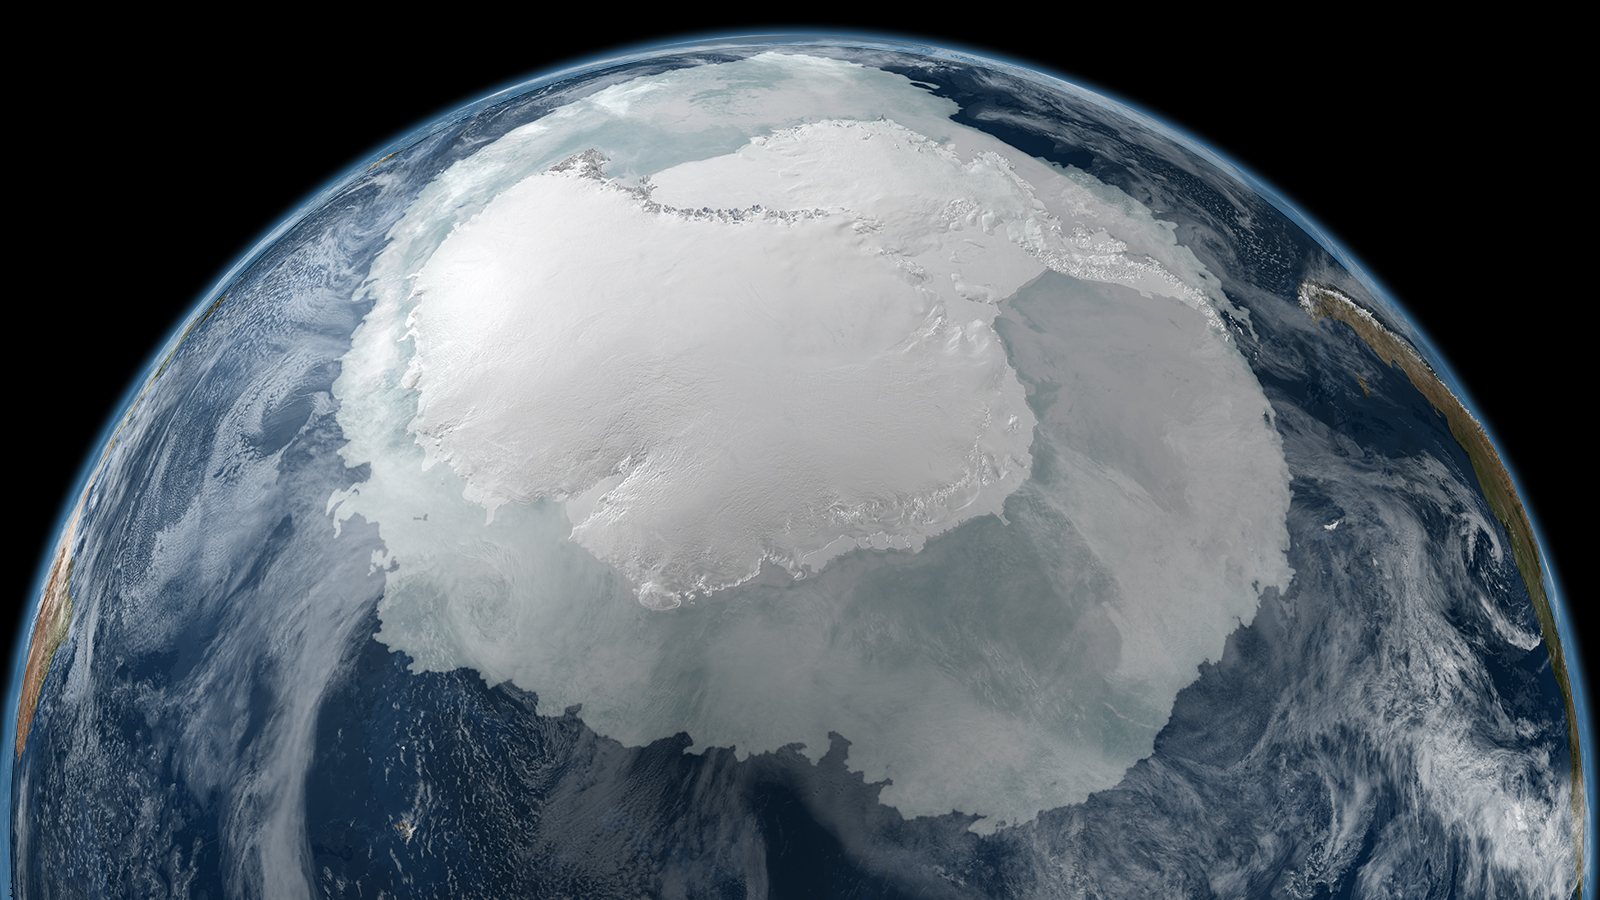 Climate change is moving the North pole and affecting Earth's rotation